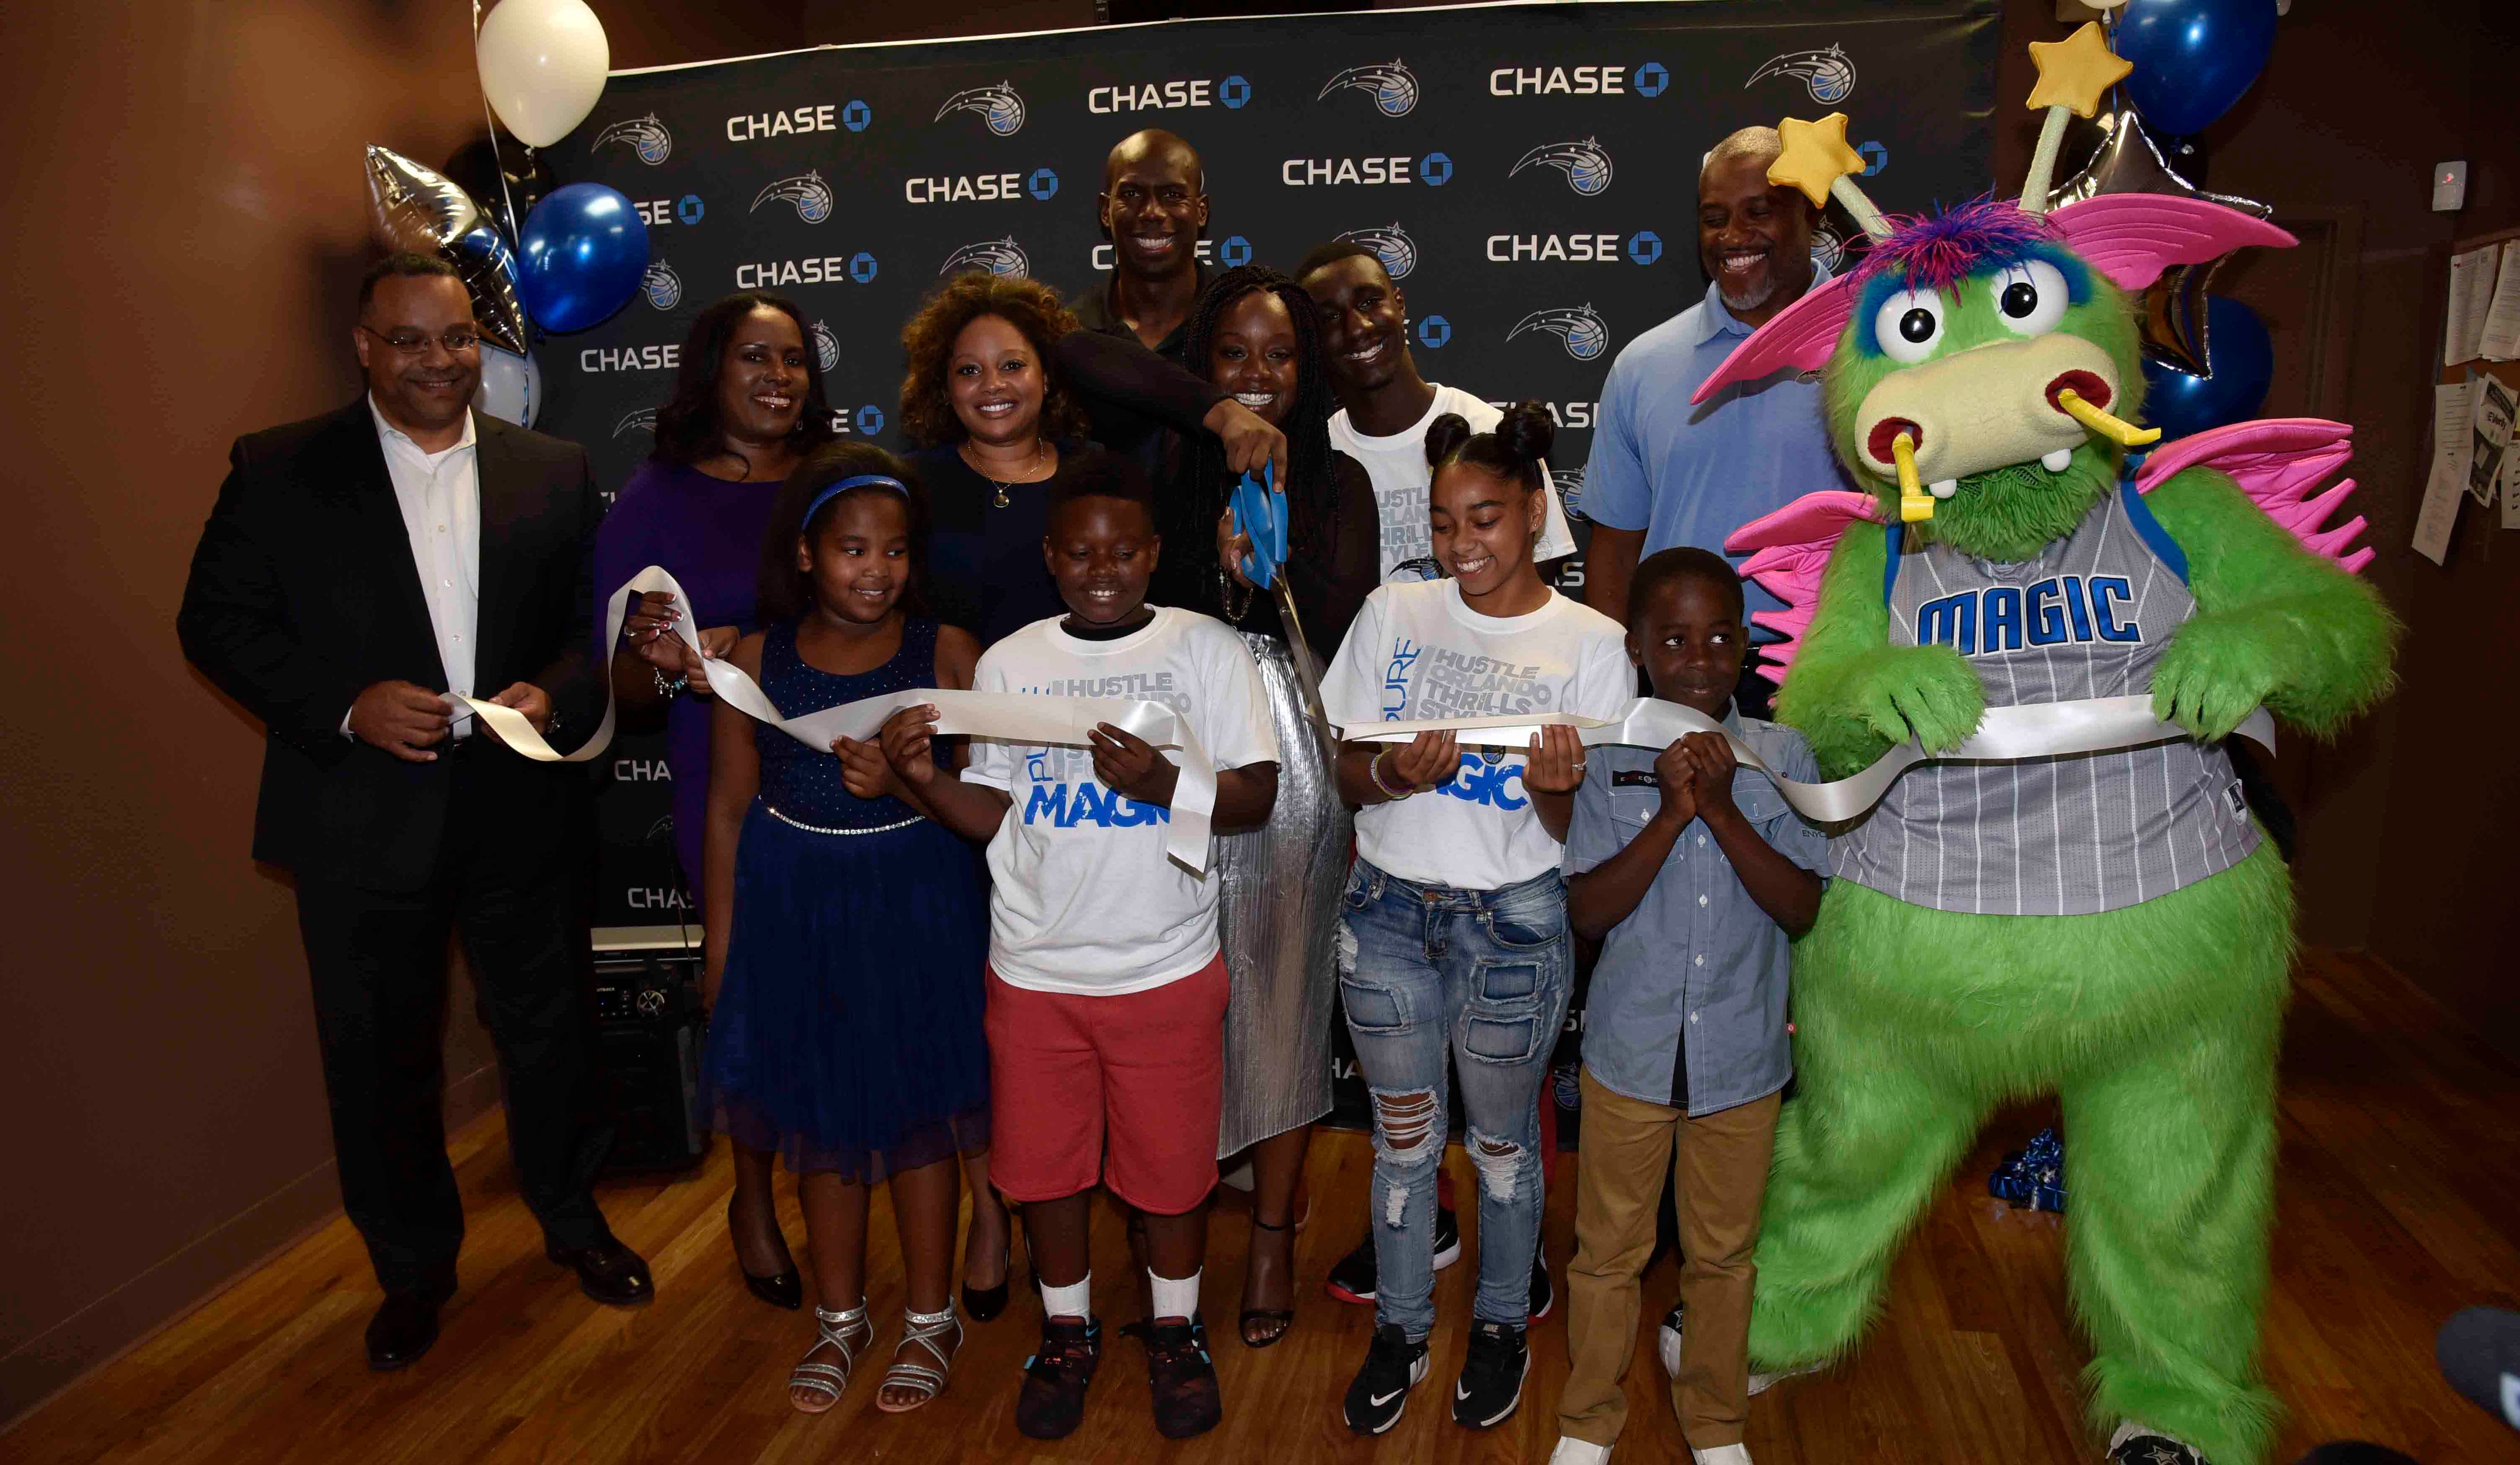 Orlando Magic and Chase Unveil Refurbished New Image Youth Center